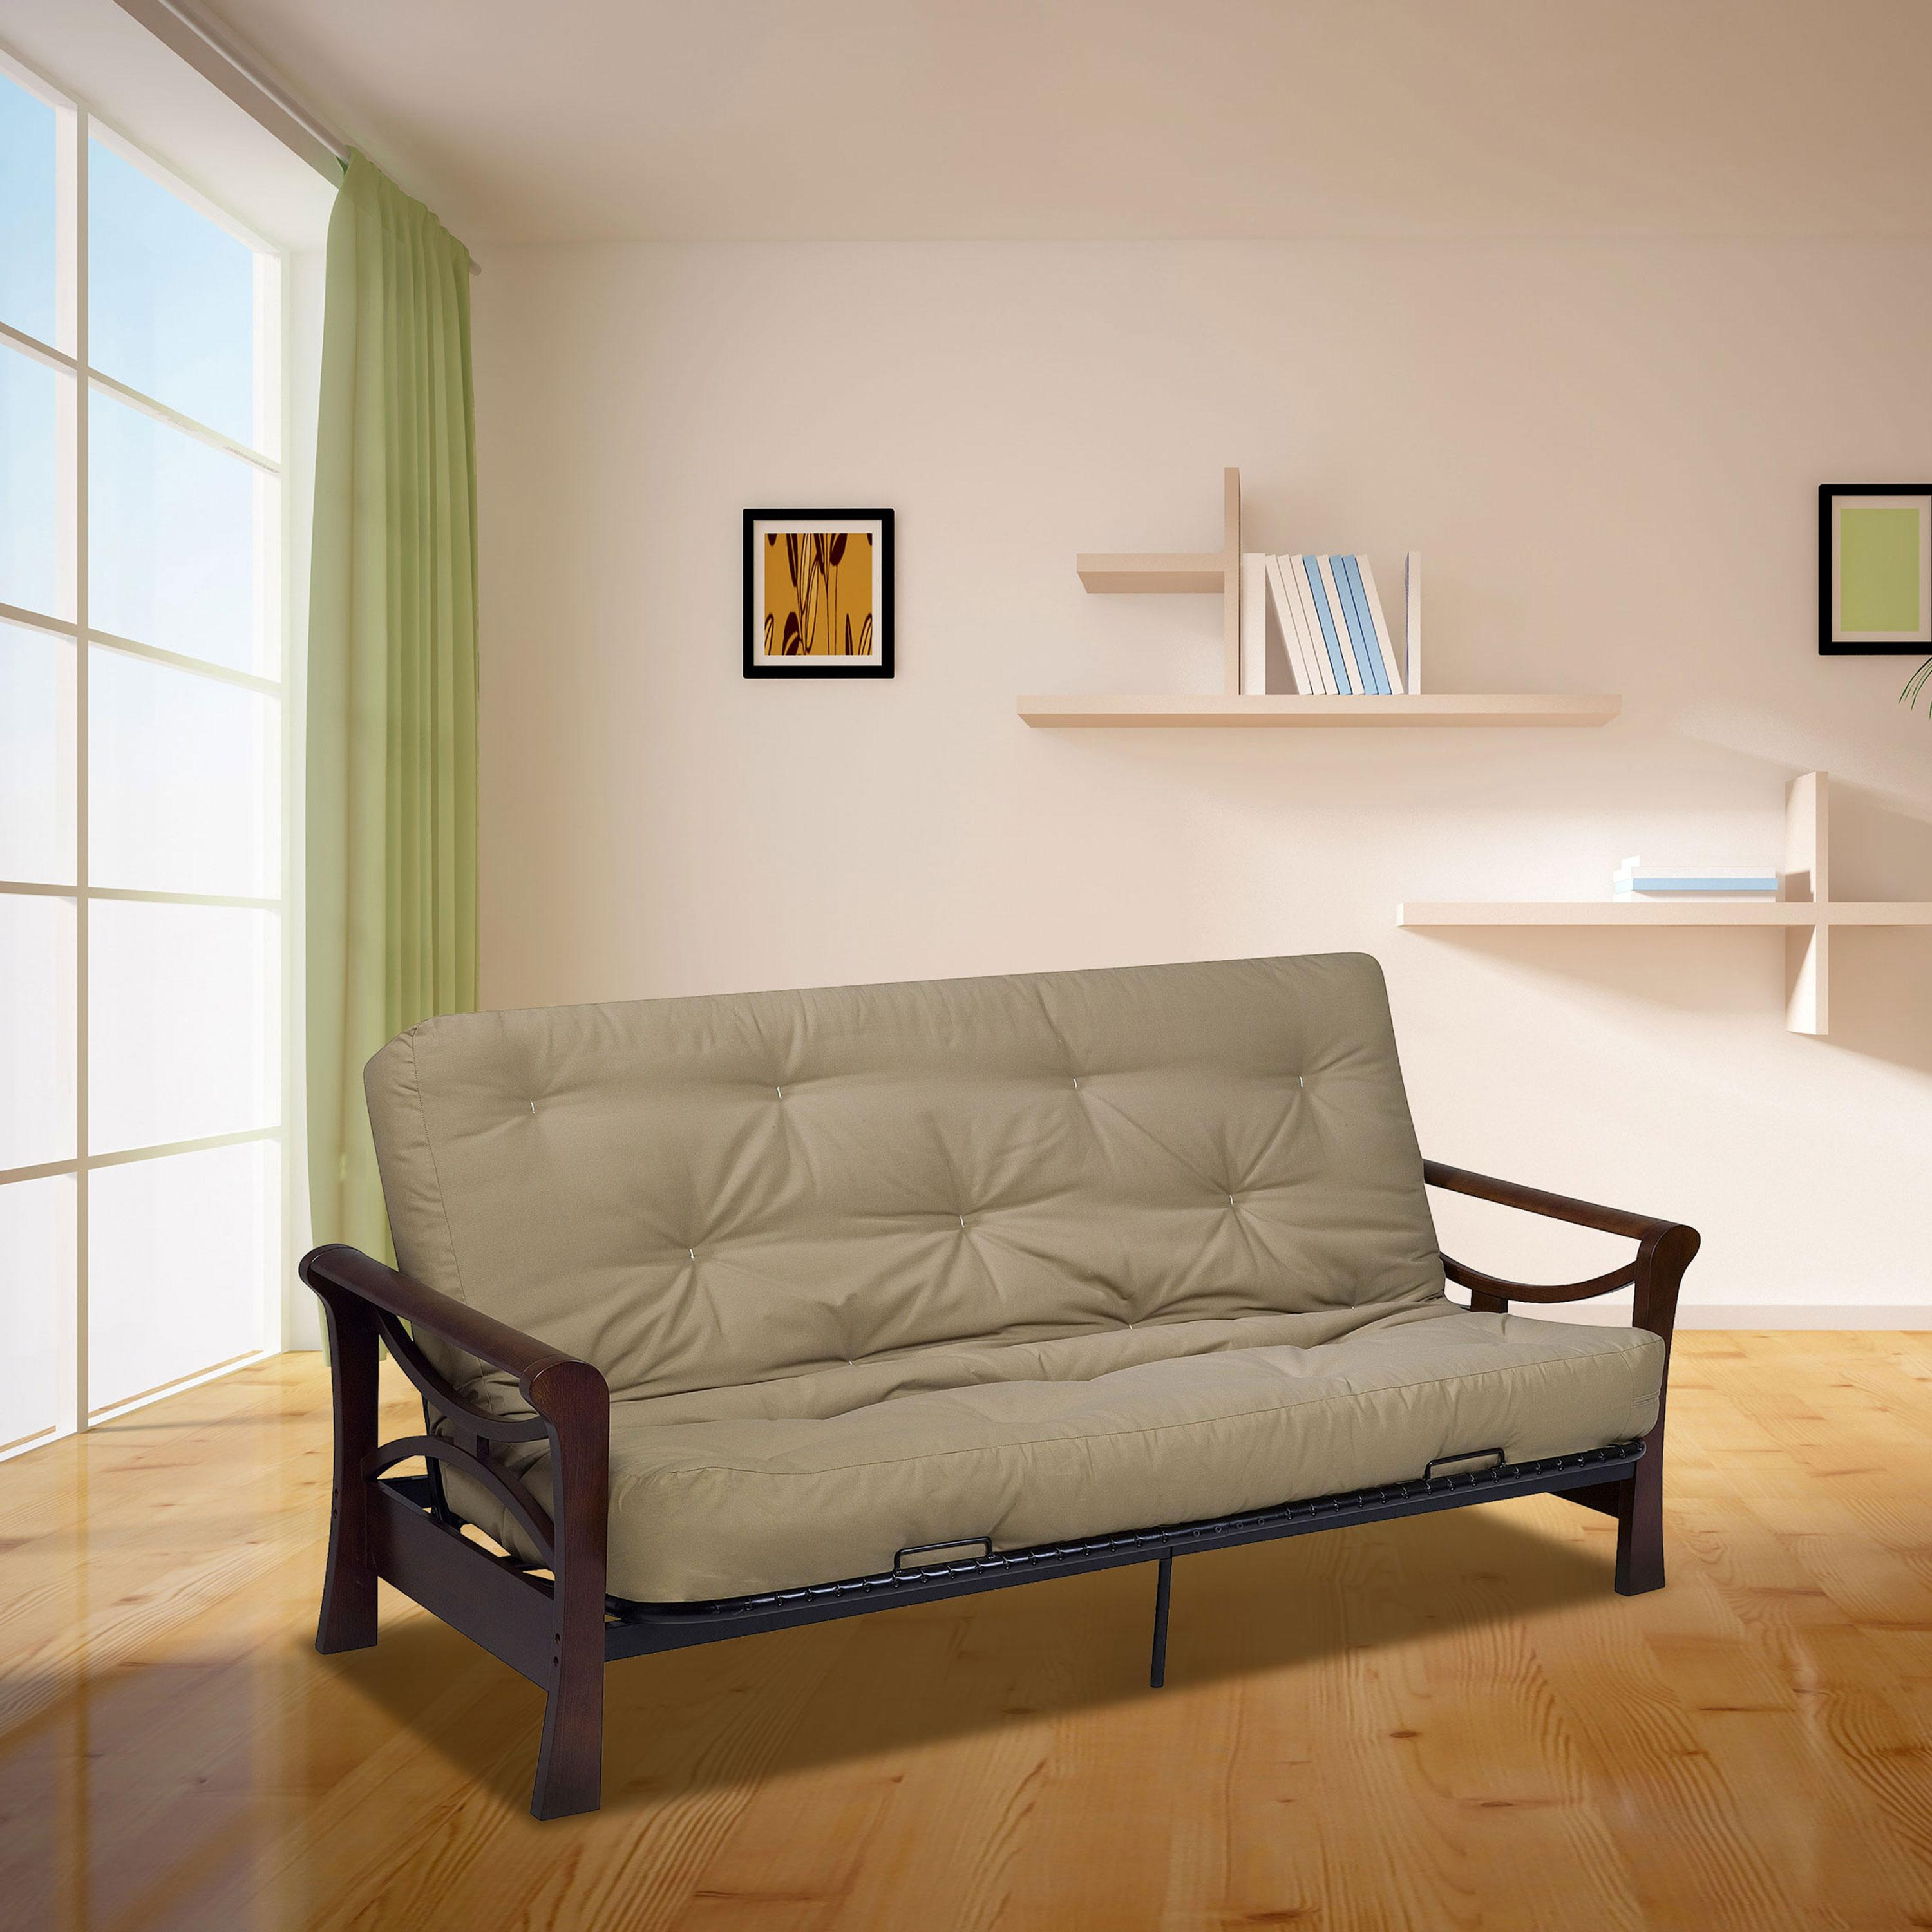 the serta cypress futon mattress works well in most room settings  amazon    serta cypress double sided innerspring full futon      rh   amazon